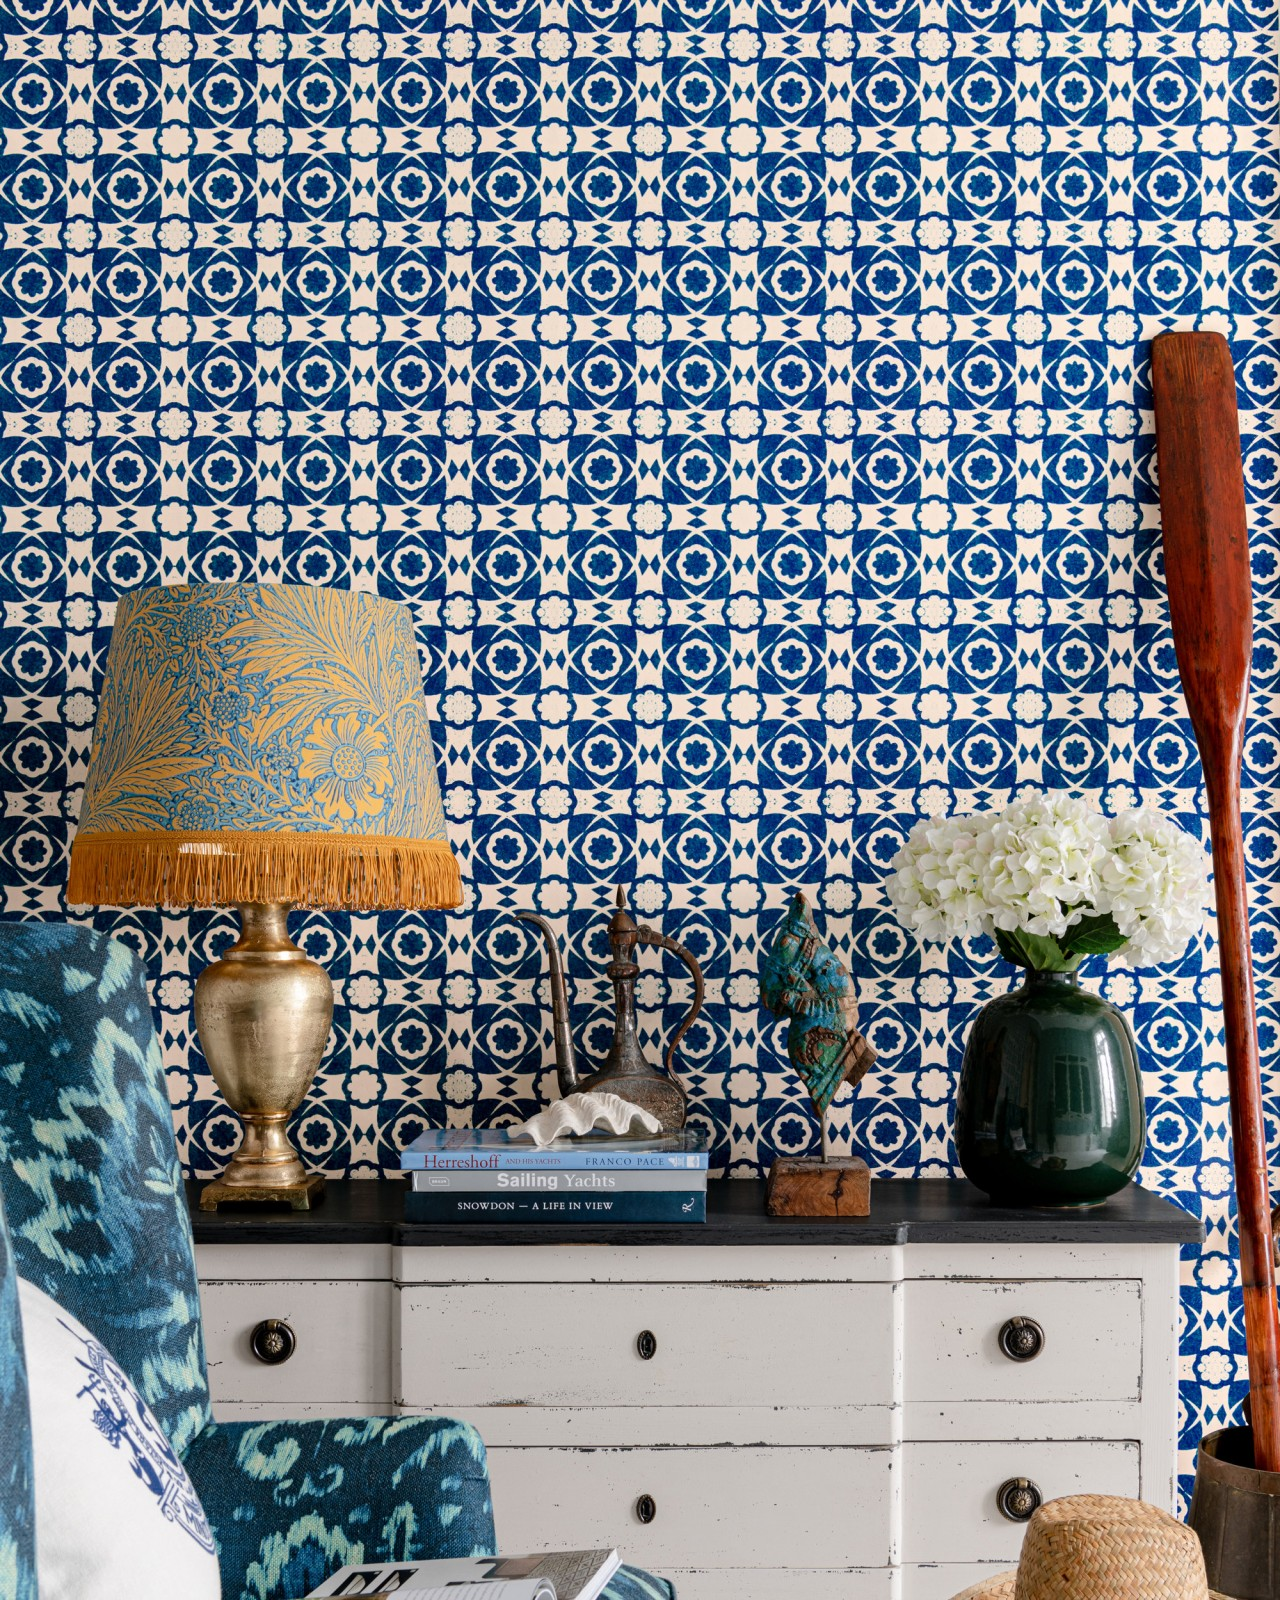 AEGEAN TILES Ultramarine Green Wallpaper